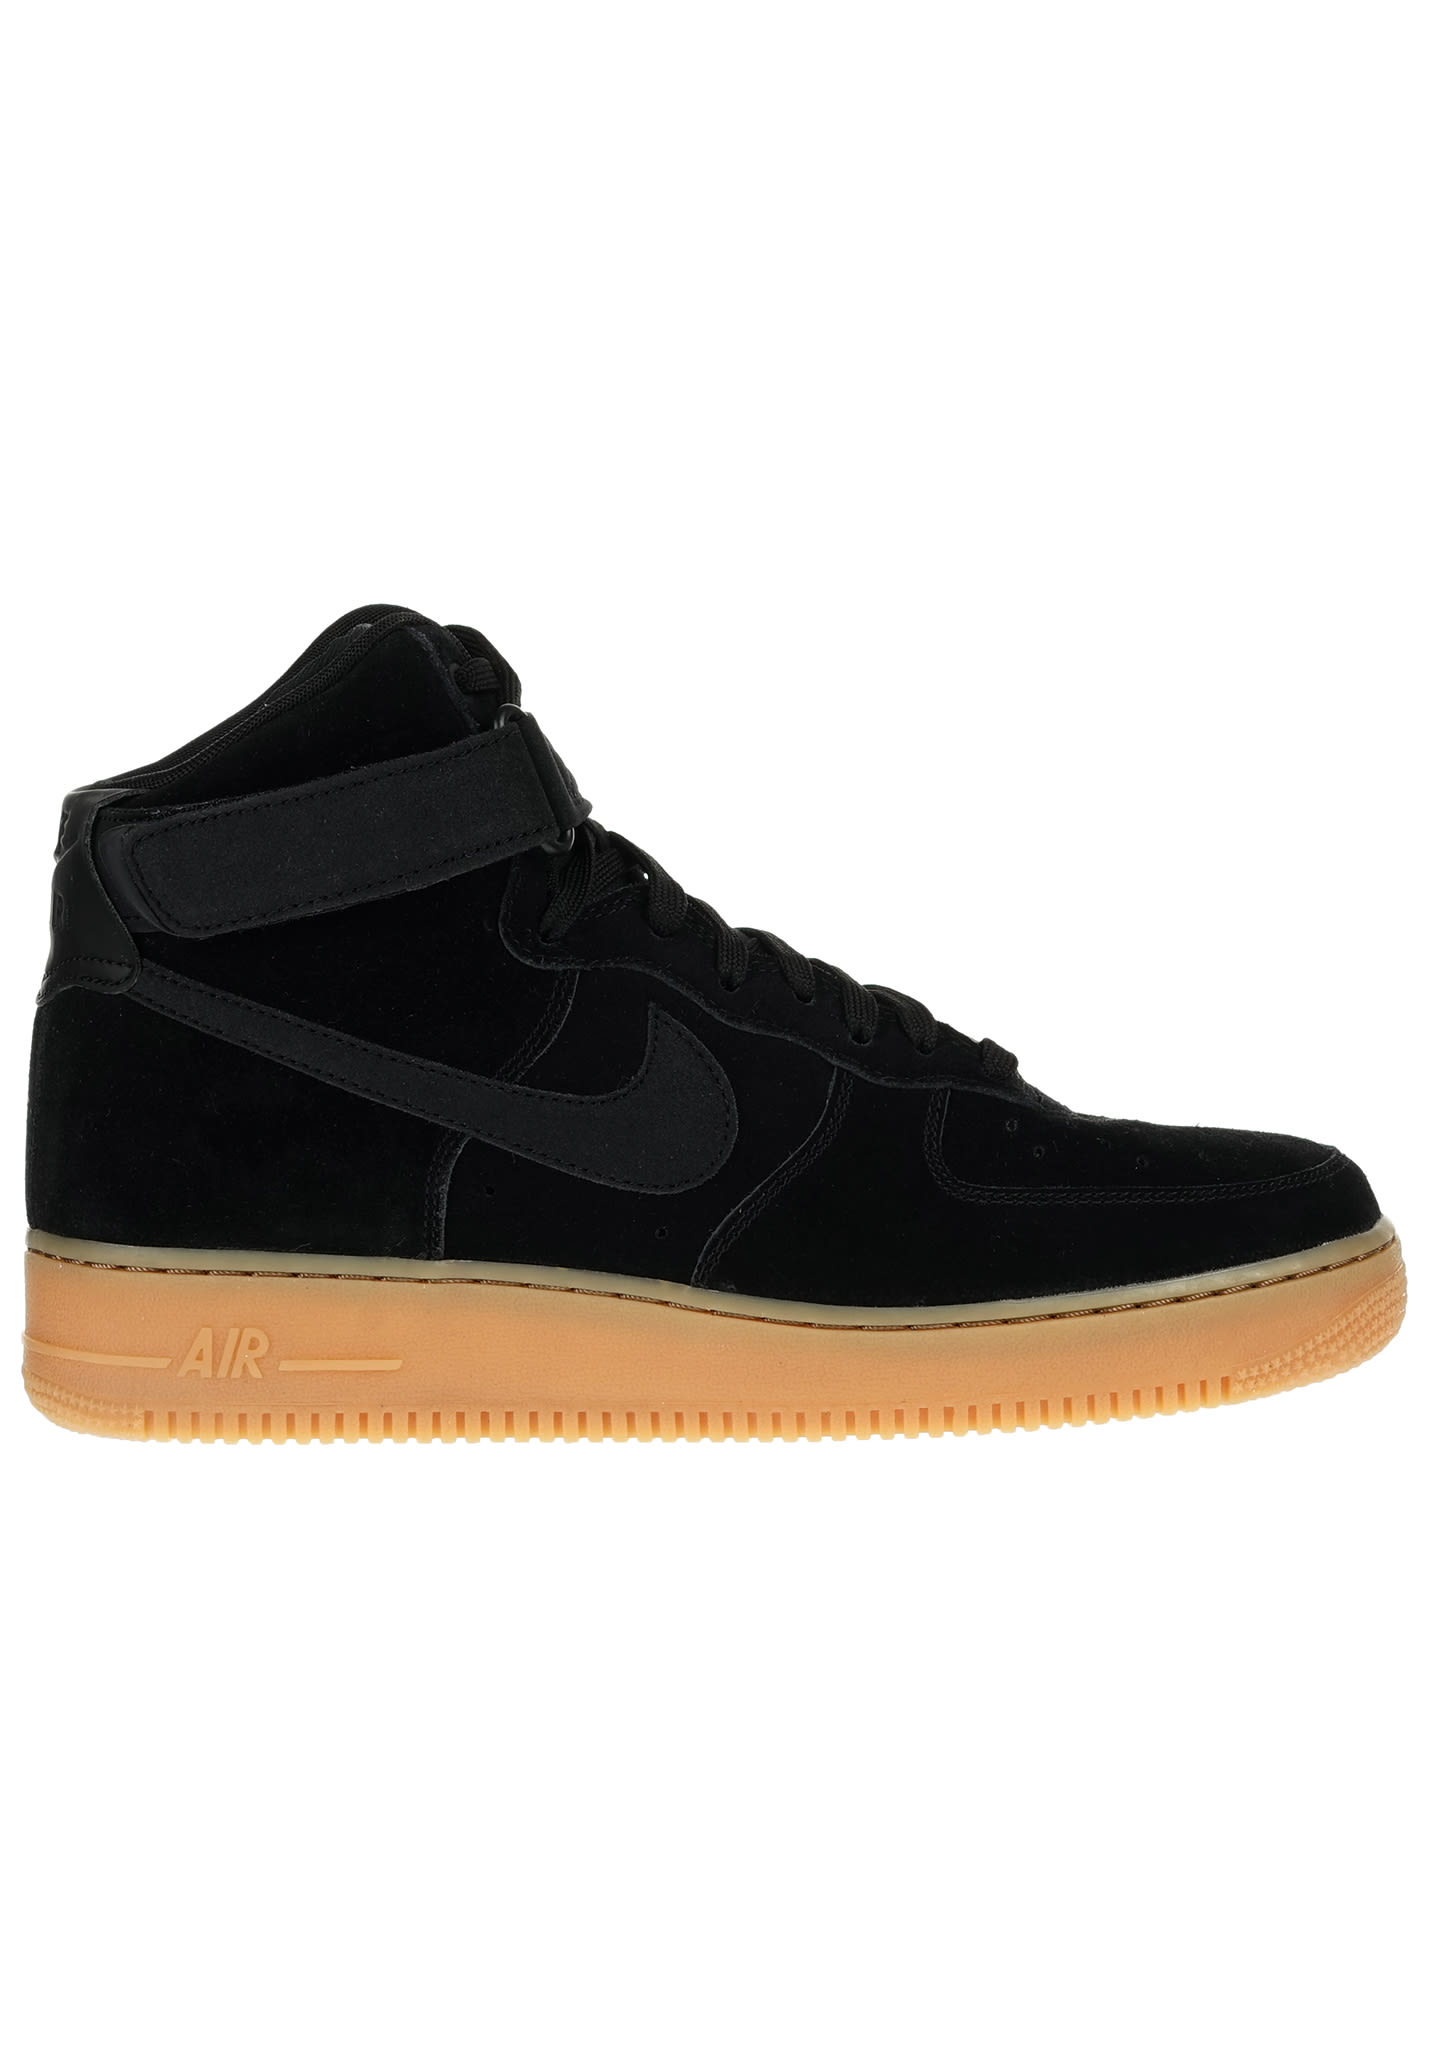 low priced 3f85a 7e86d NIKE SPORTSWEAR Air Force 1 High  07 Lv8 Suede - Sneaker für Herren -  Schwarz - Planet Sports